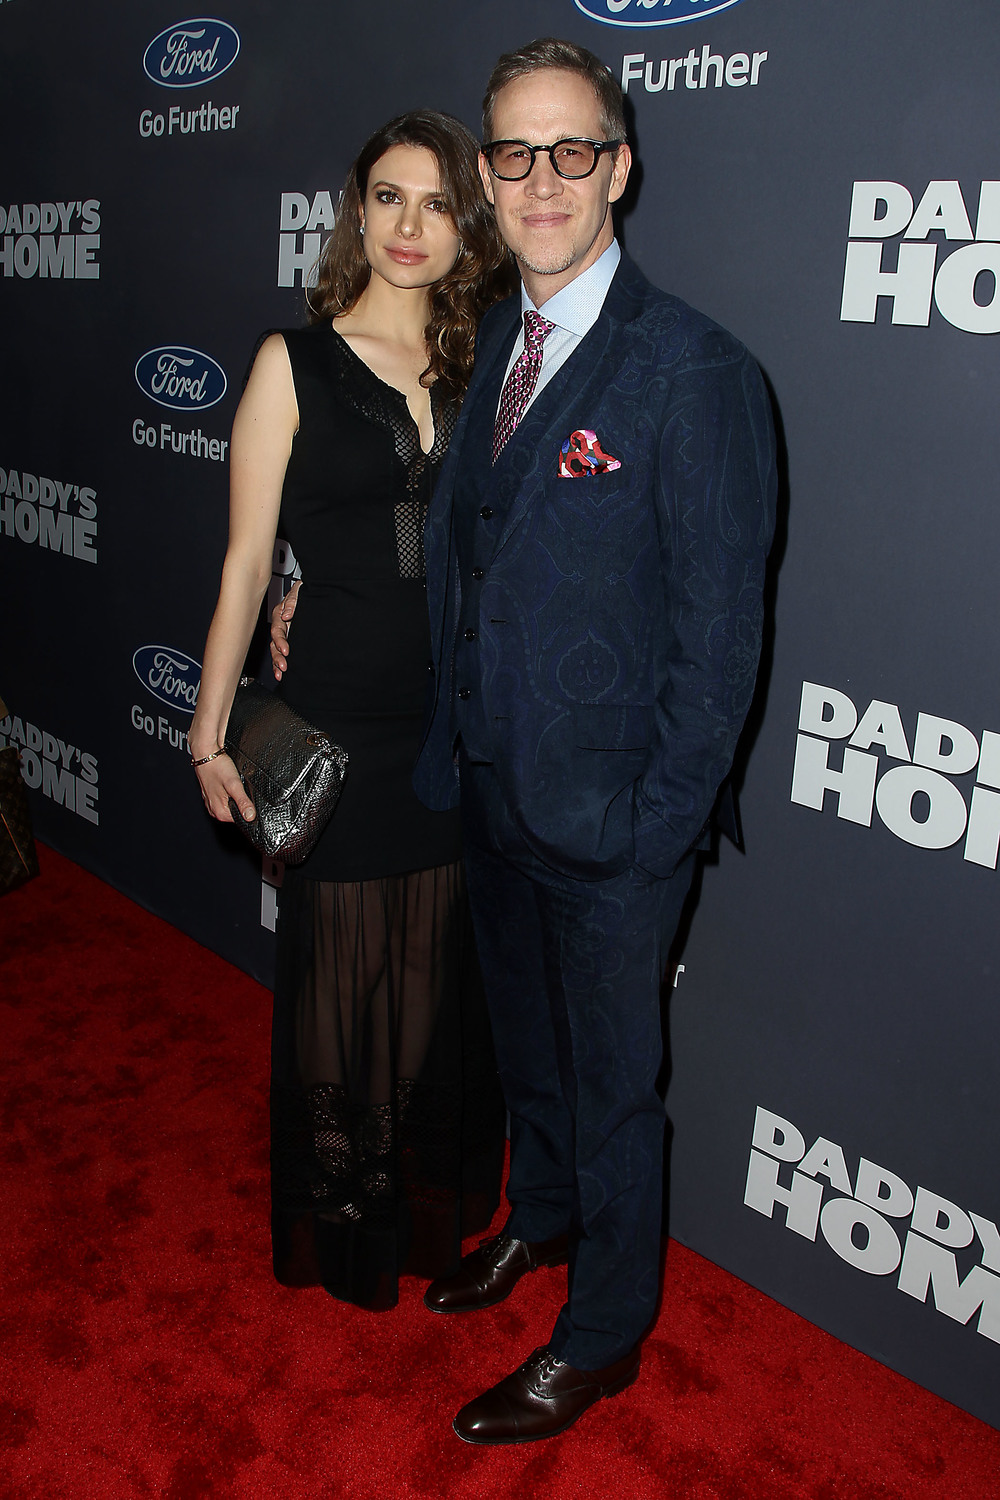 Antoniette-Costa-with-Joey-McFarland-Red-Granite-Pictures-Daddys-Home-New-York-Premiere.JPG